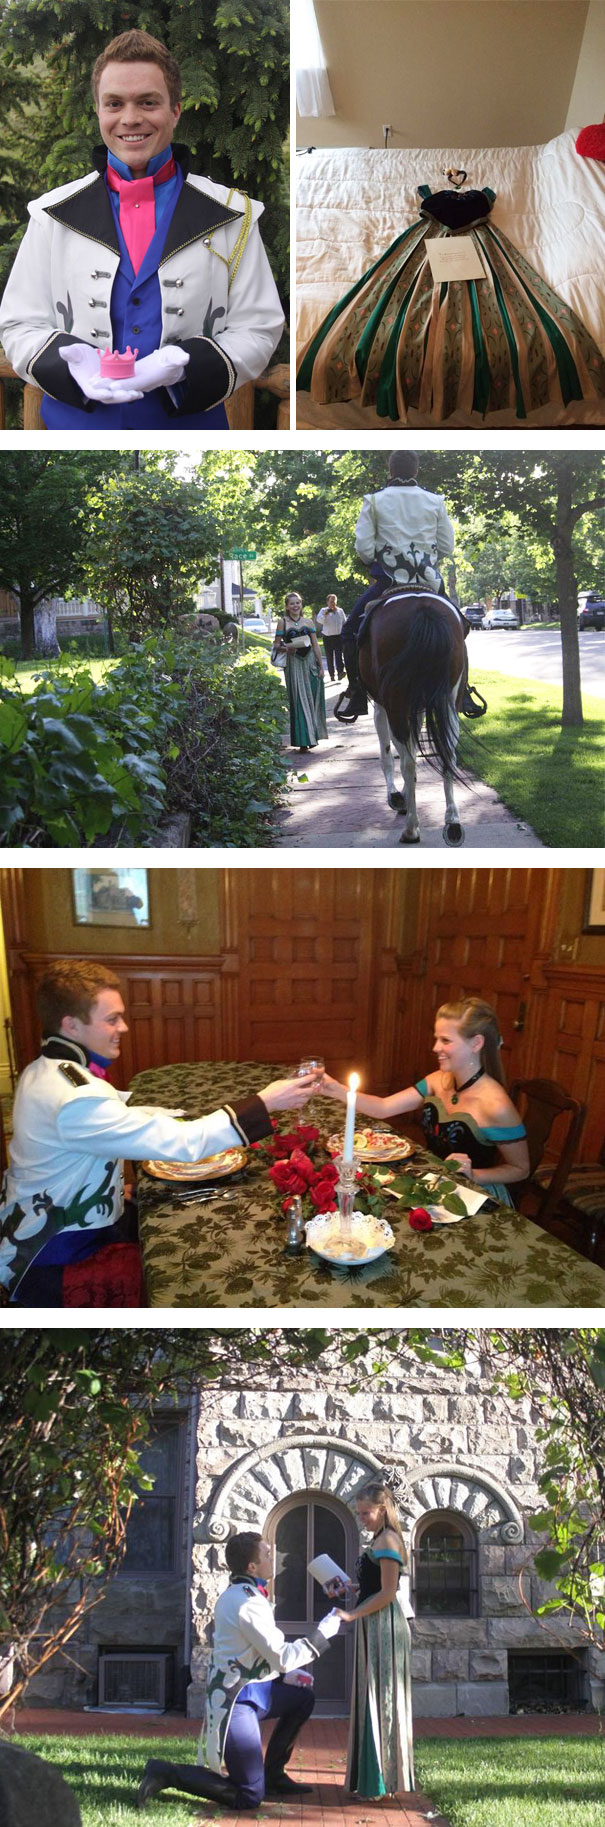 Amazing Frozen-Themed Marriage Proposal